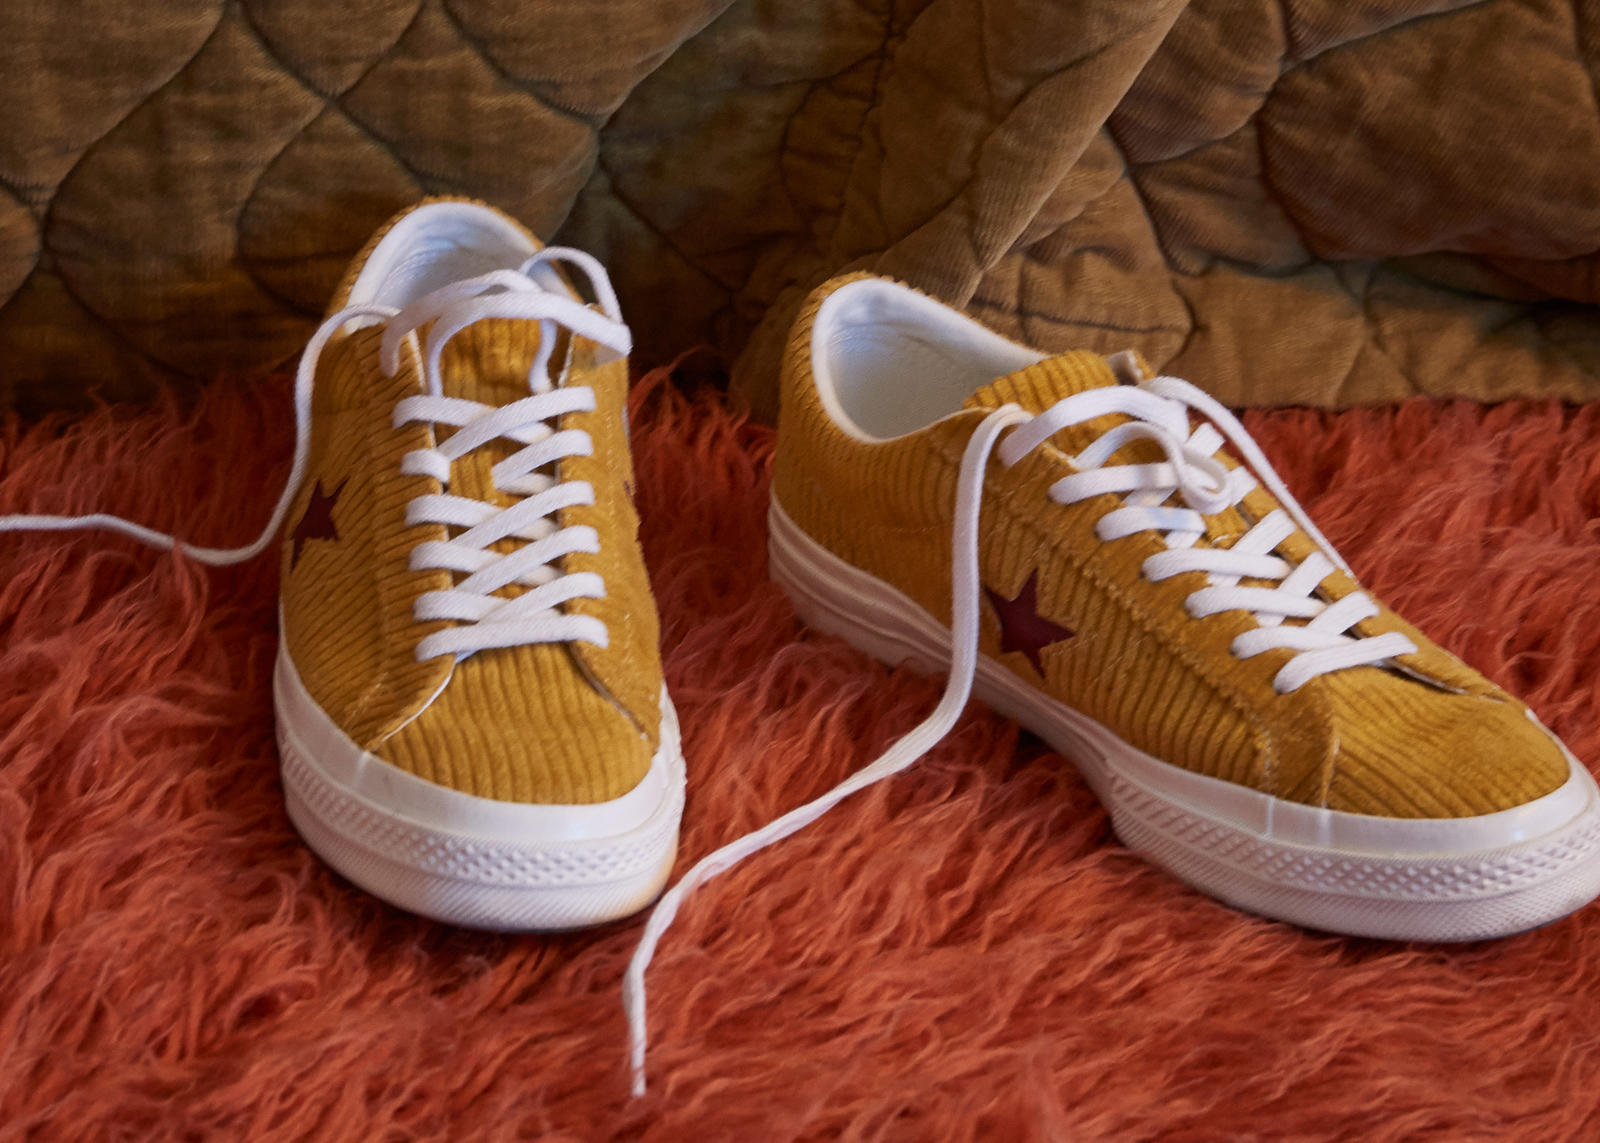 A$AP Nast Debuts Mid-century Inspired Converse Collaboration, Reinvents Classics 2